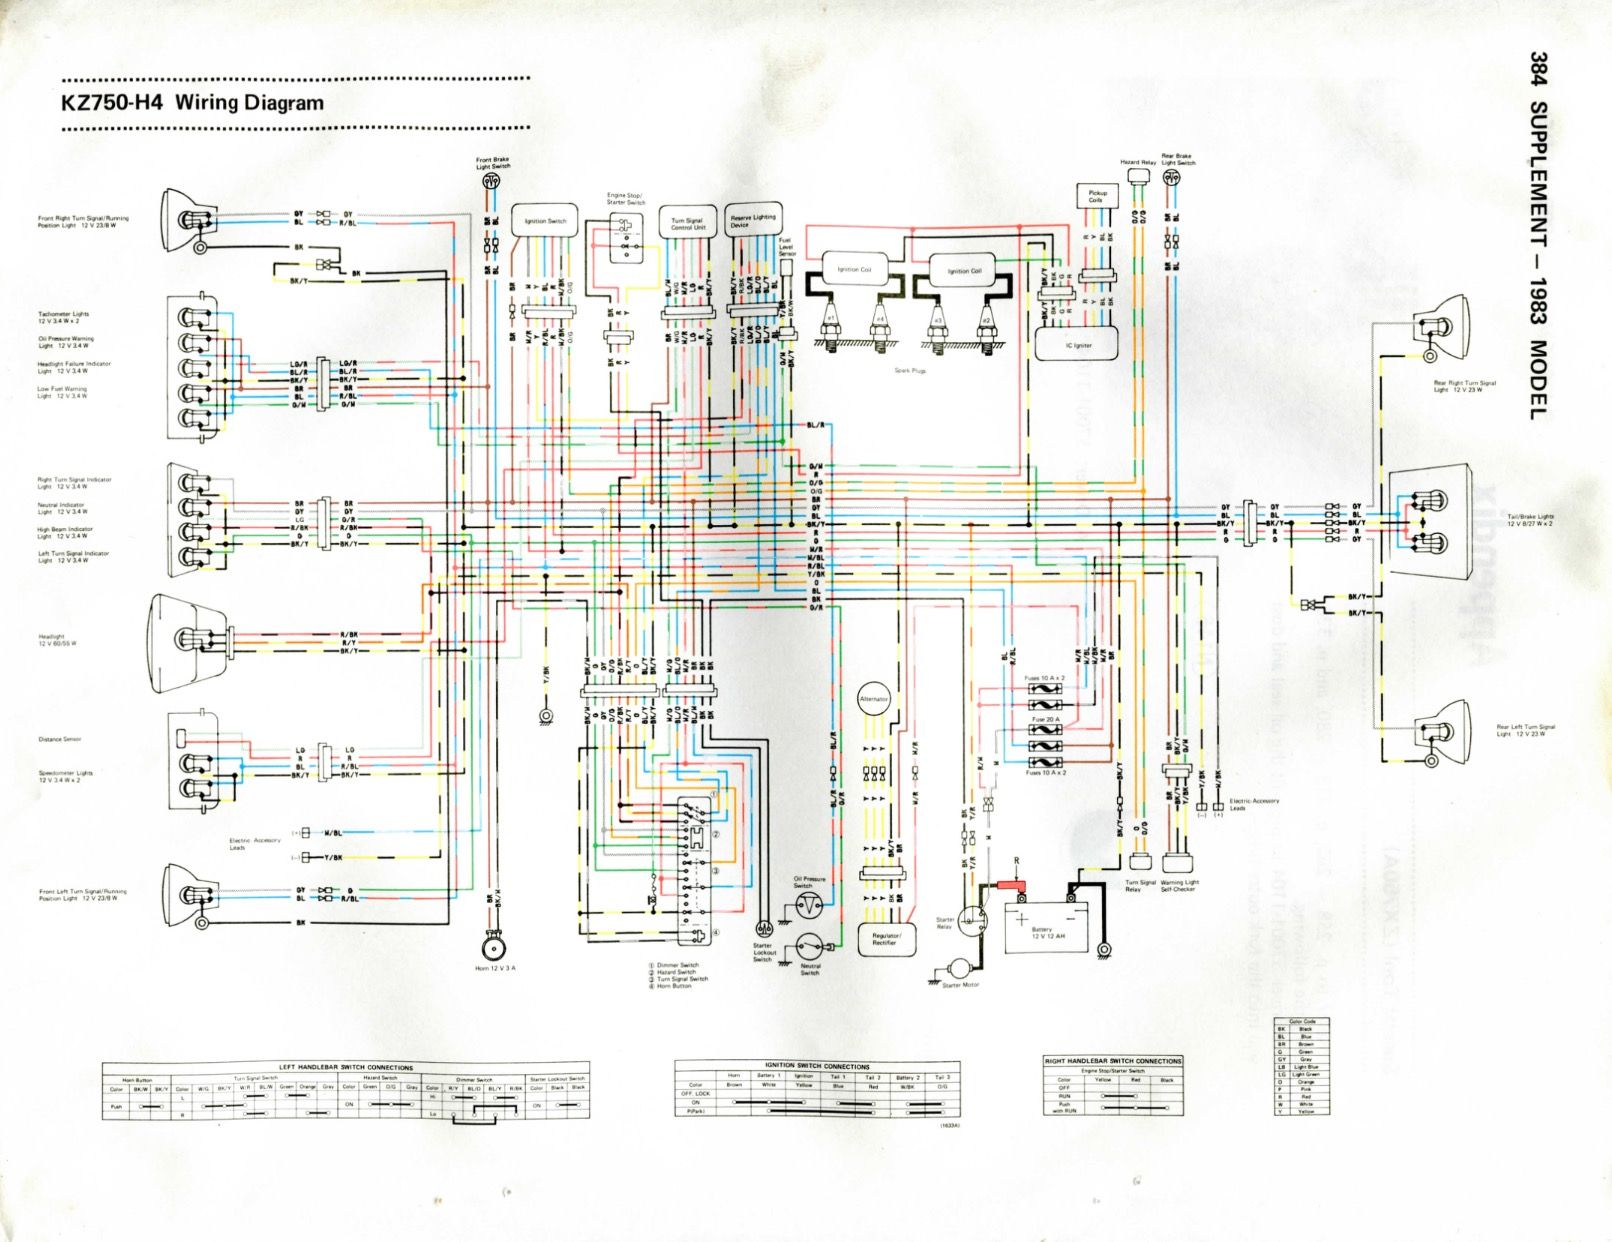 1983 Kawasaki KZ750 H4 LTD wiring diagram, highly utilized during wiring  and harness install.